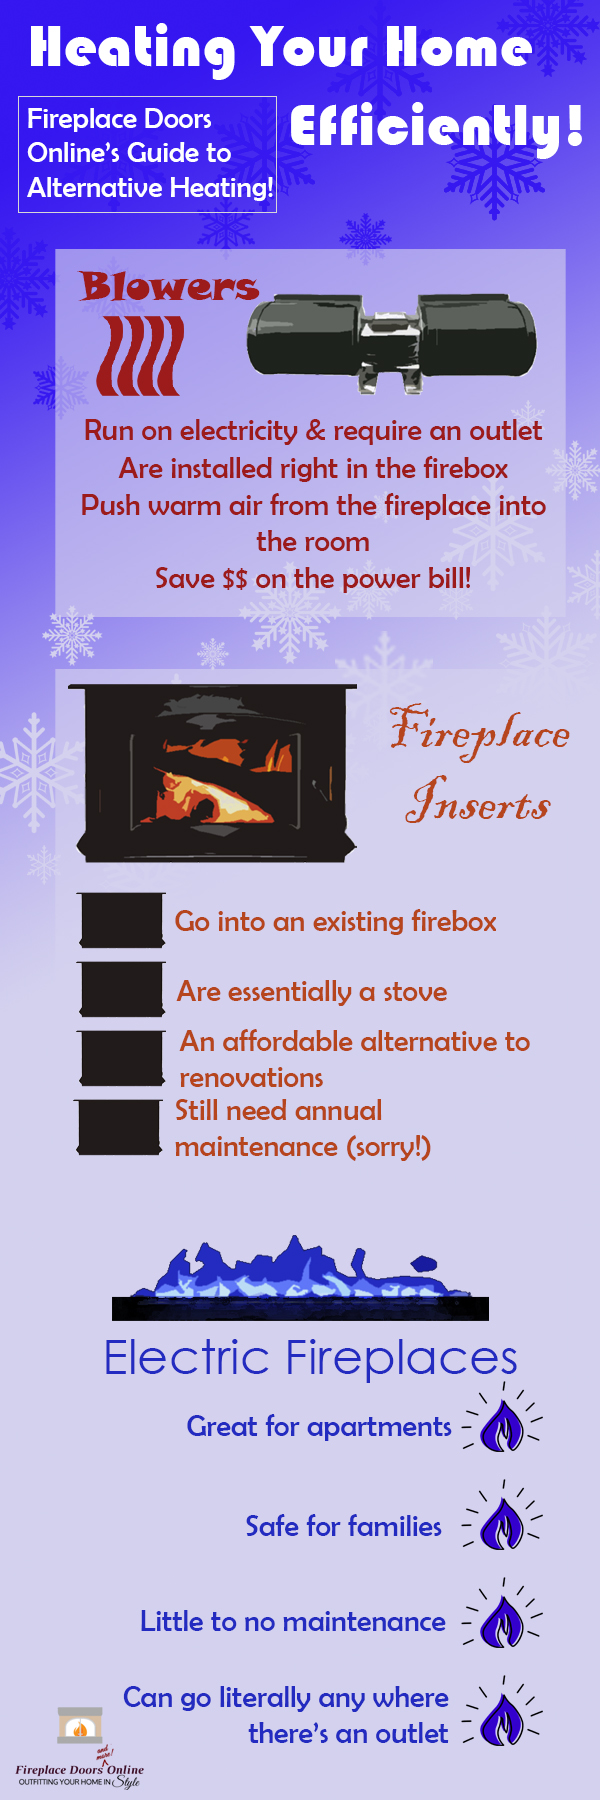 Infographic on heating your home efficiently